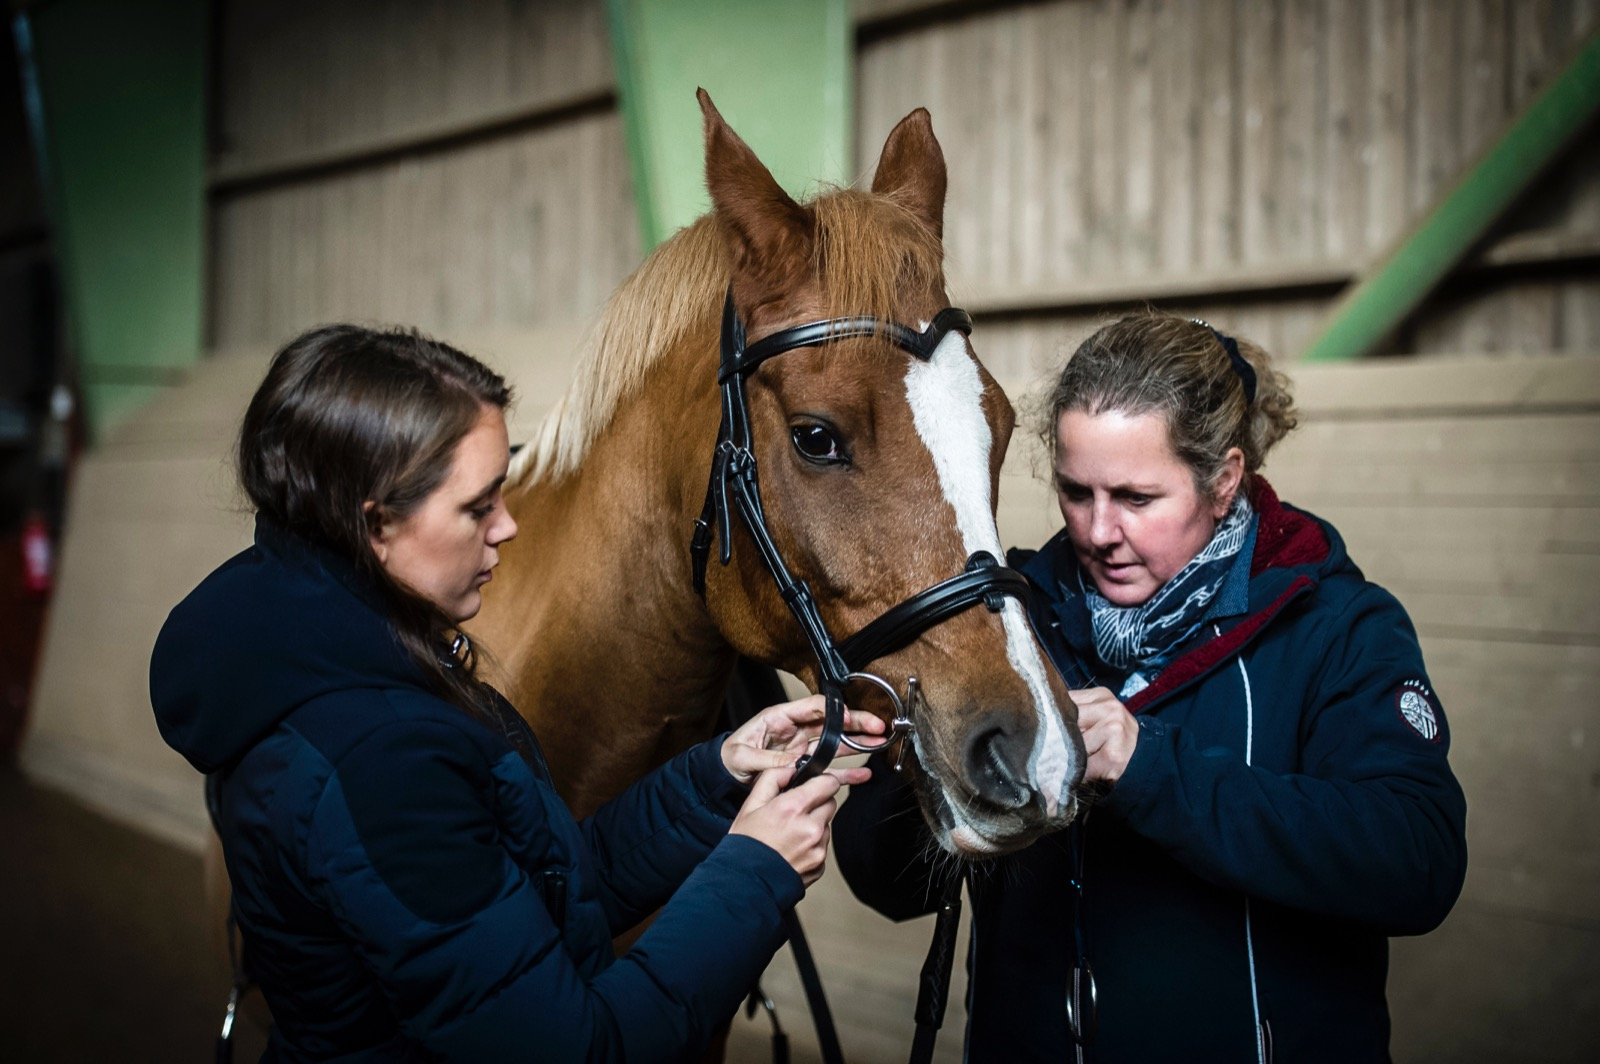 Louise Fagersen from Fager bits, Géraldine Vandevenne from Equibitfit